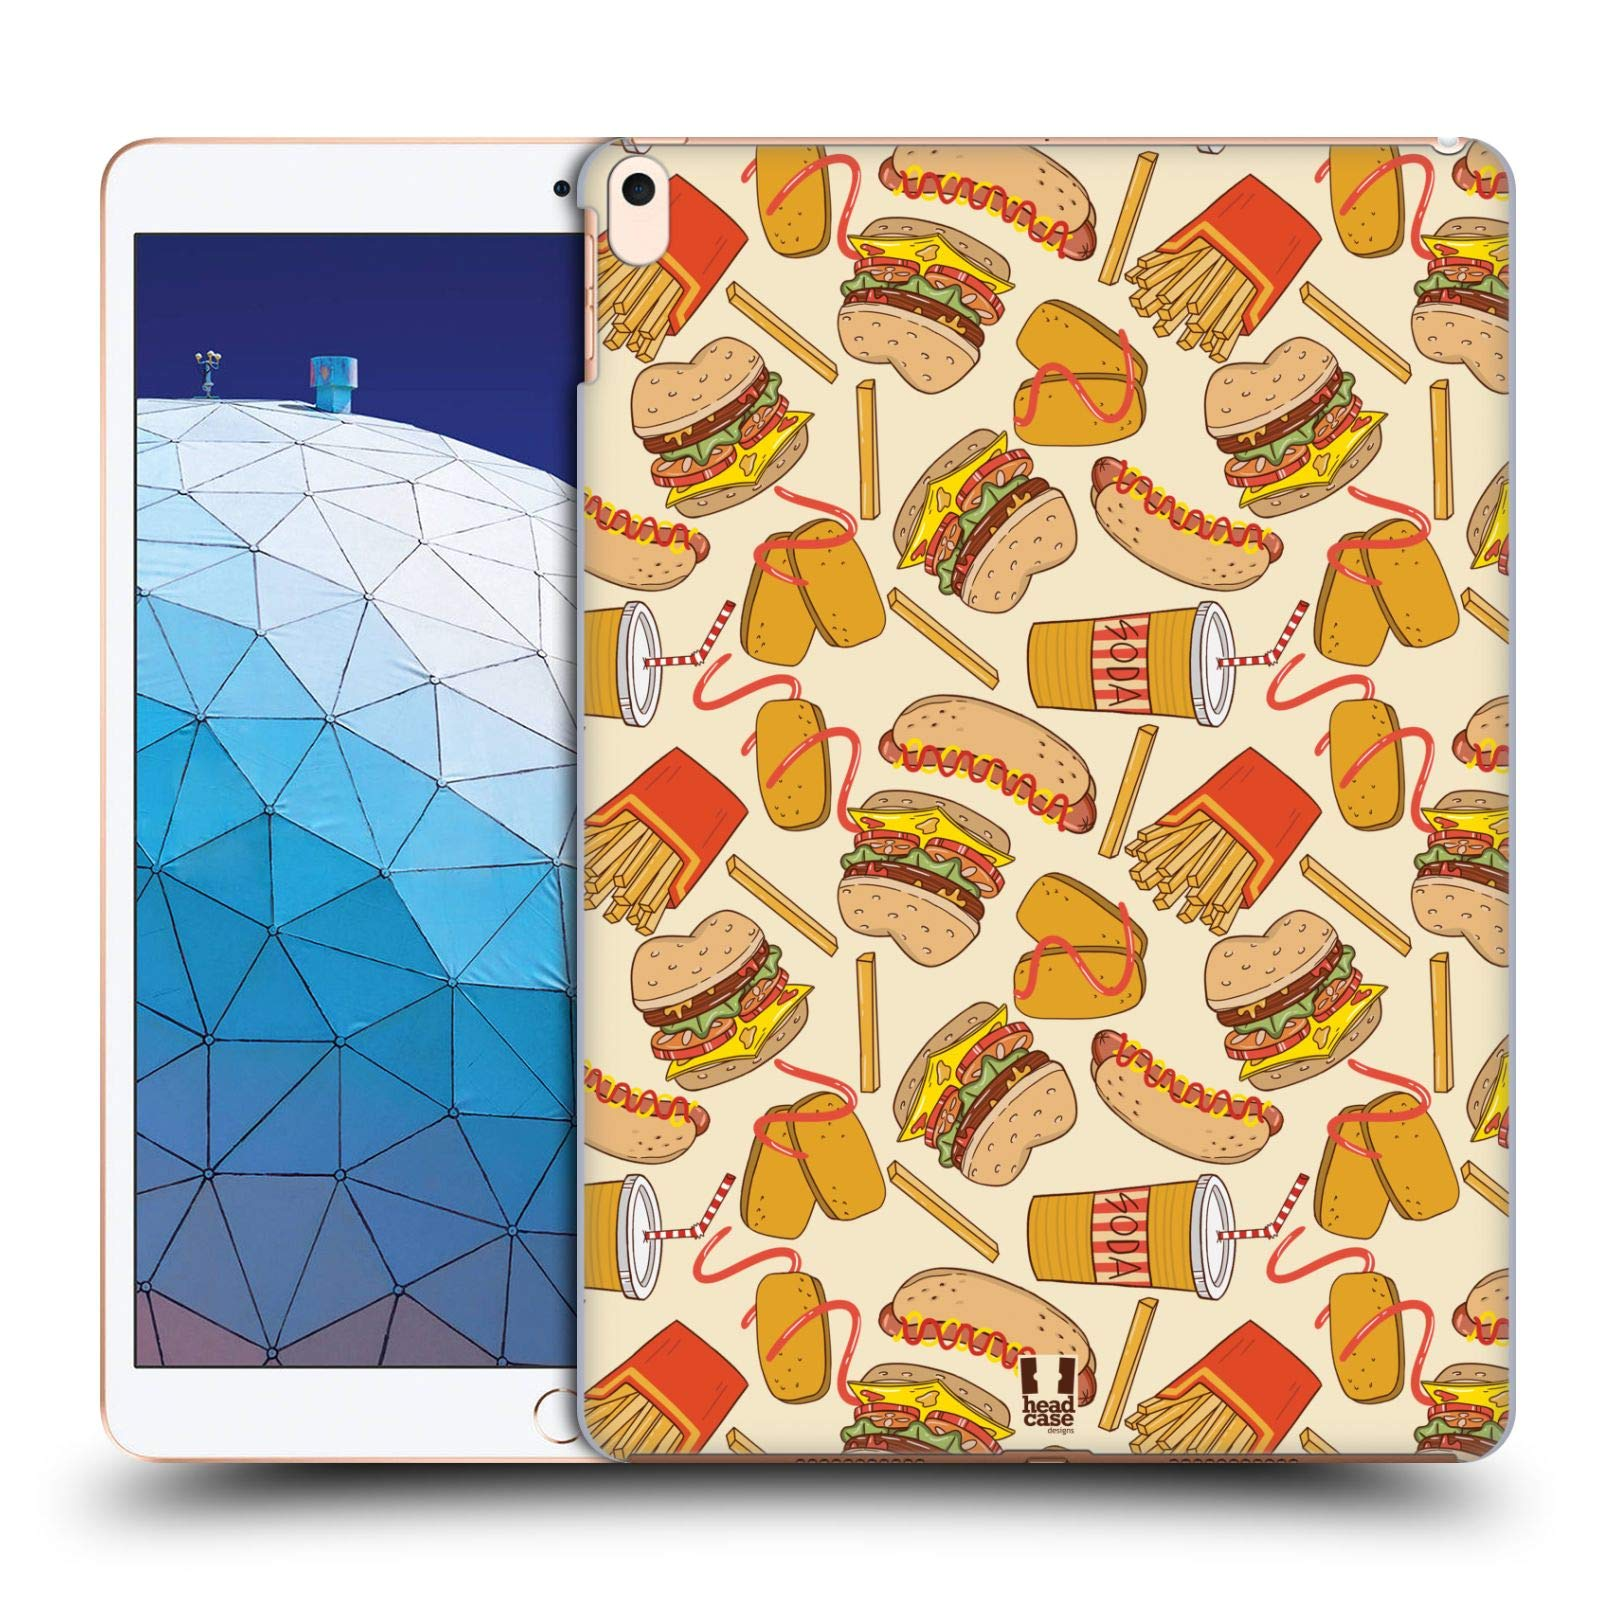 Head Case Designs Burger and Fries Fast Food Patterns Hard Back Case Compatible for iPad Air (2019) by Head Case Designs